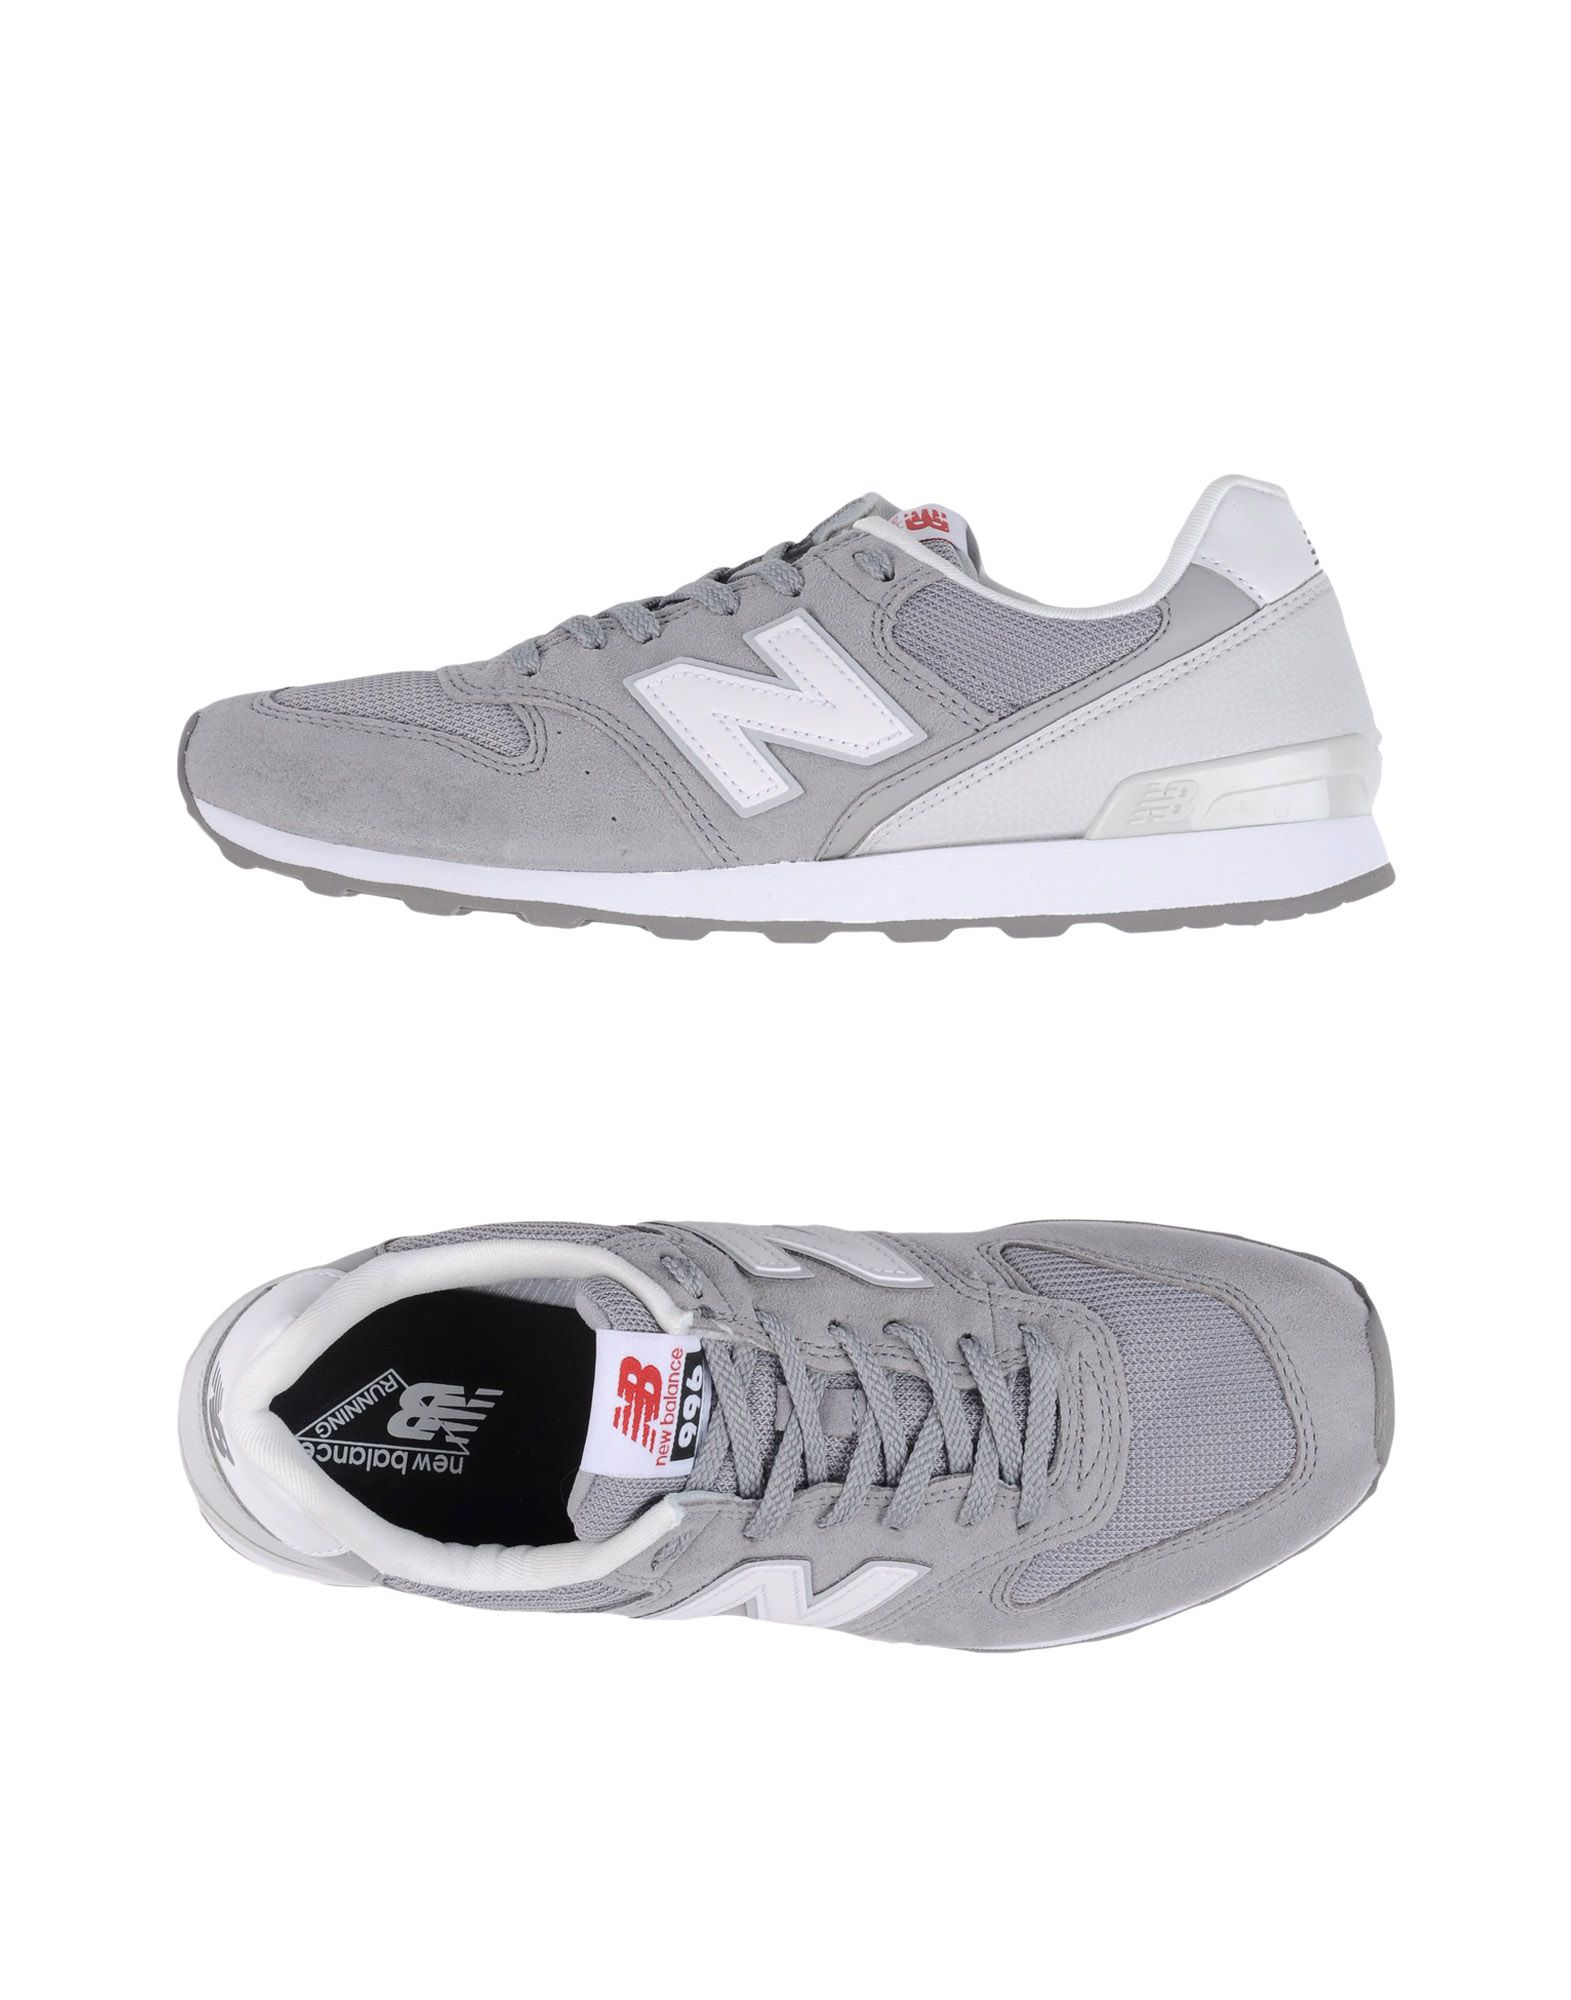 Sneakers New Balance 996 Suede - Mesh Seasonal - Femme - Sneakers New Balance sur